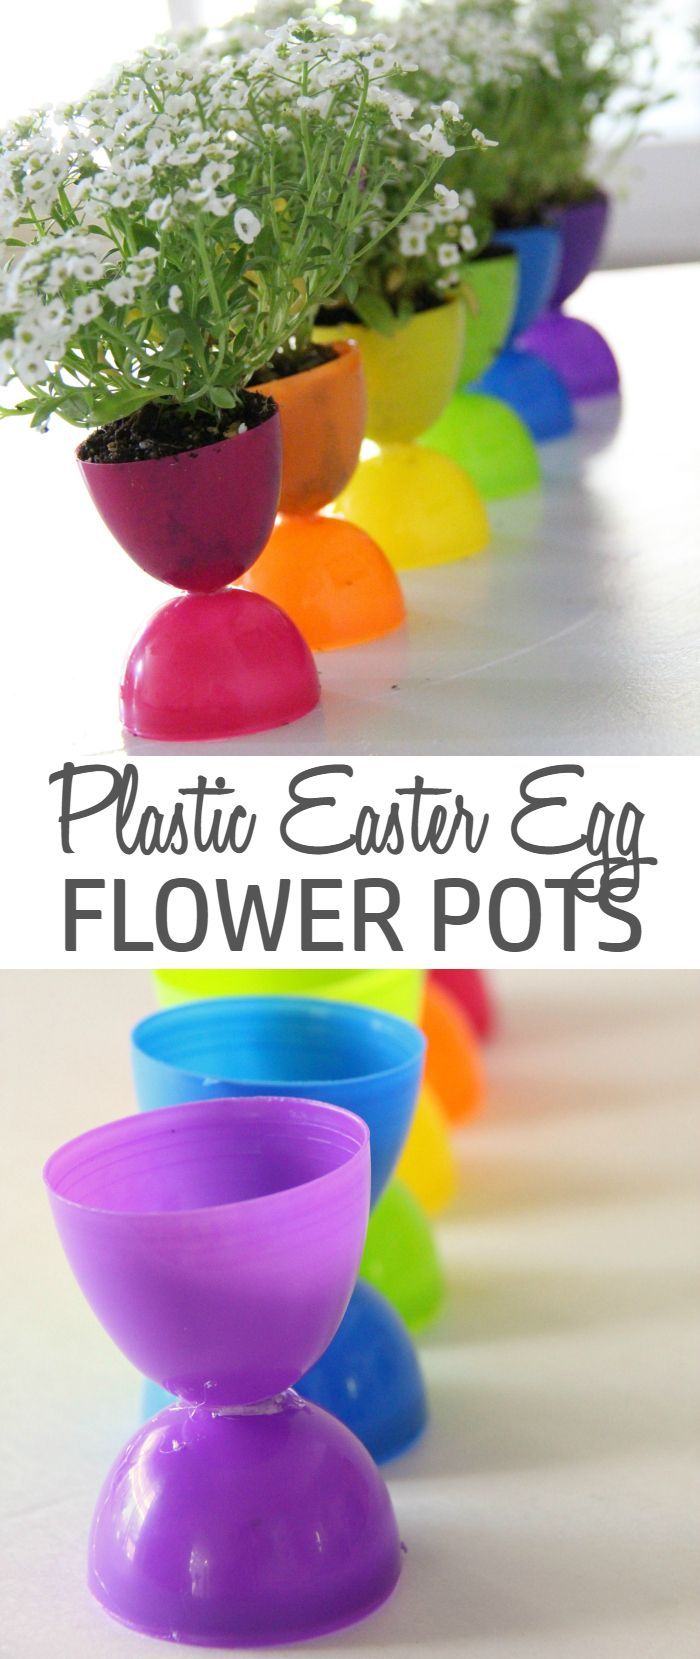 Grab the kids and make this fun, easy & simple spring craft! www.madewithHAPPY.com